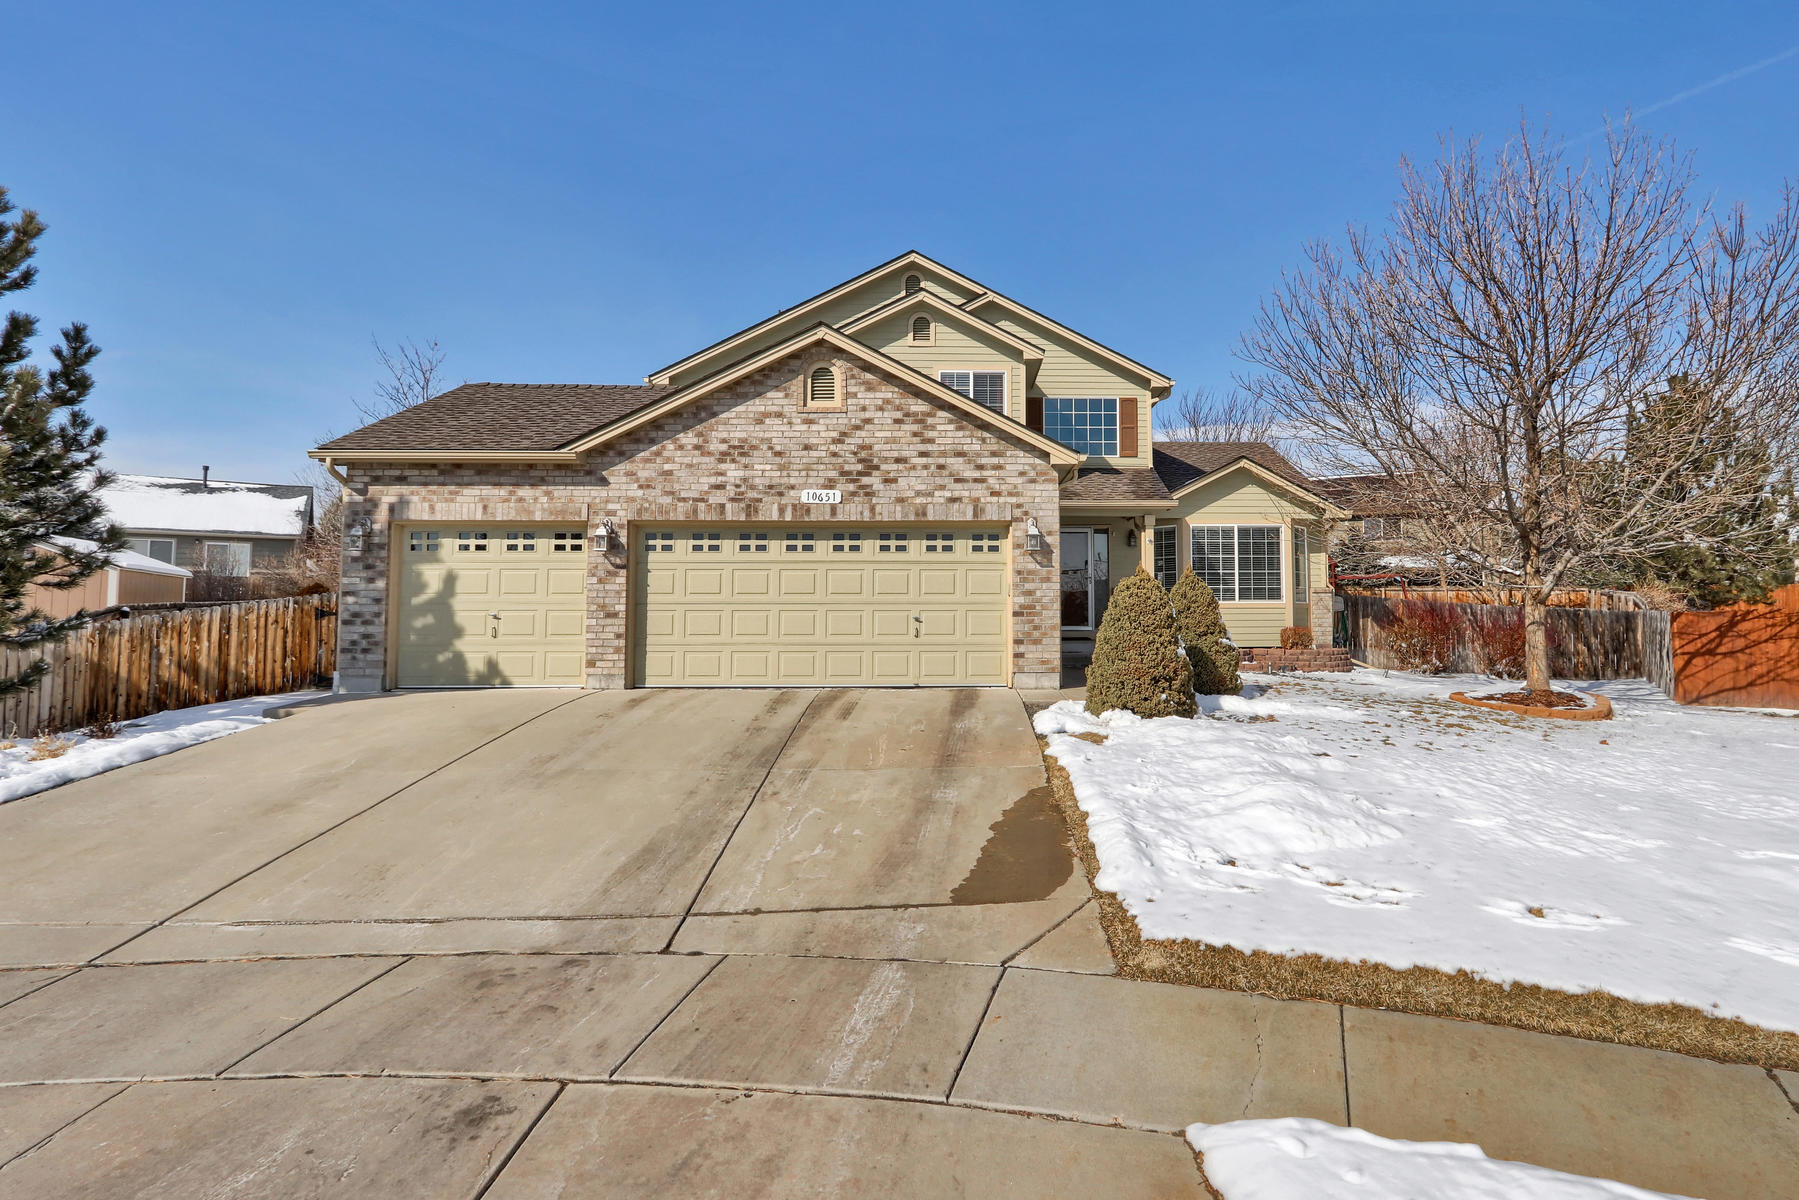 10651 W 54th Ave Arvada CO-001-1-Exterior Front-MLS_Size.jpg